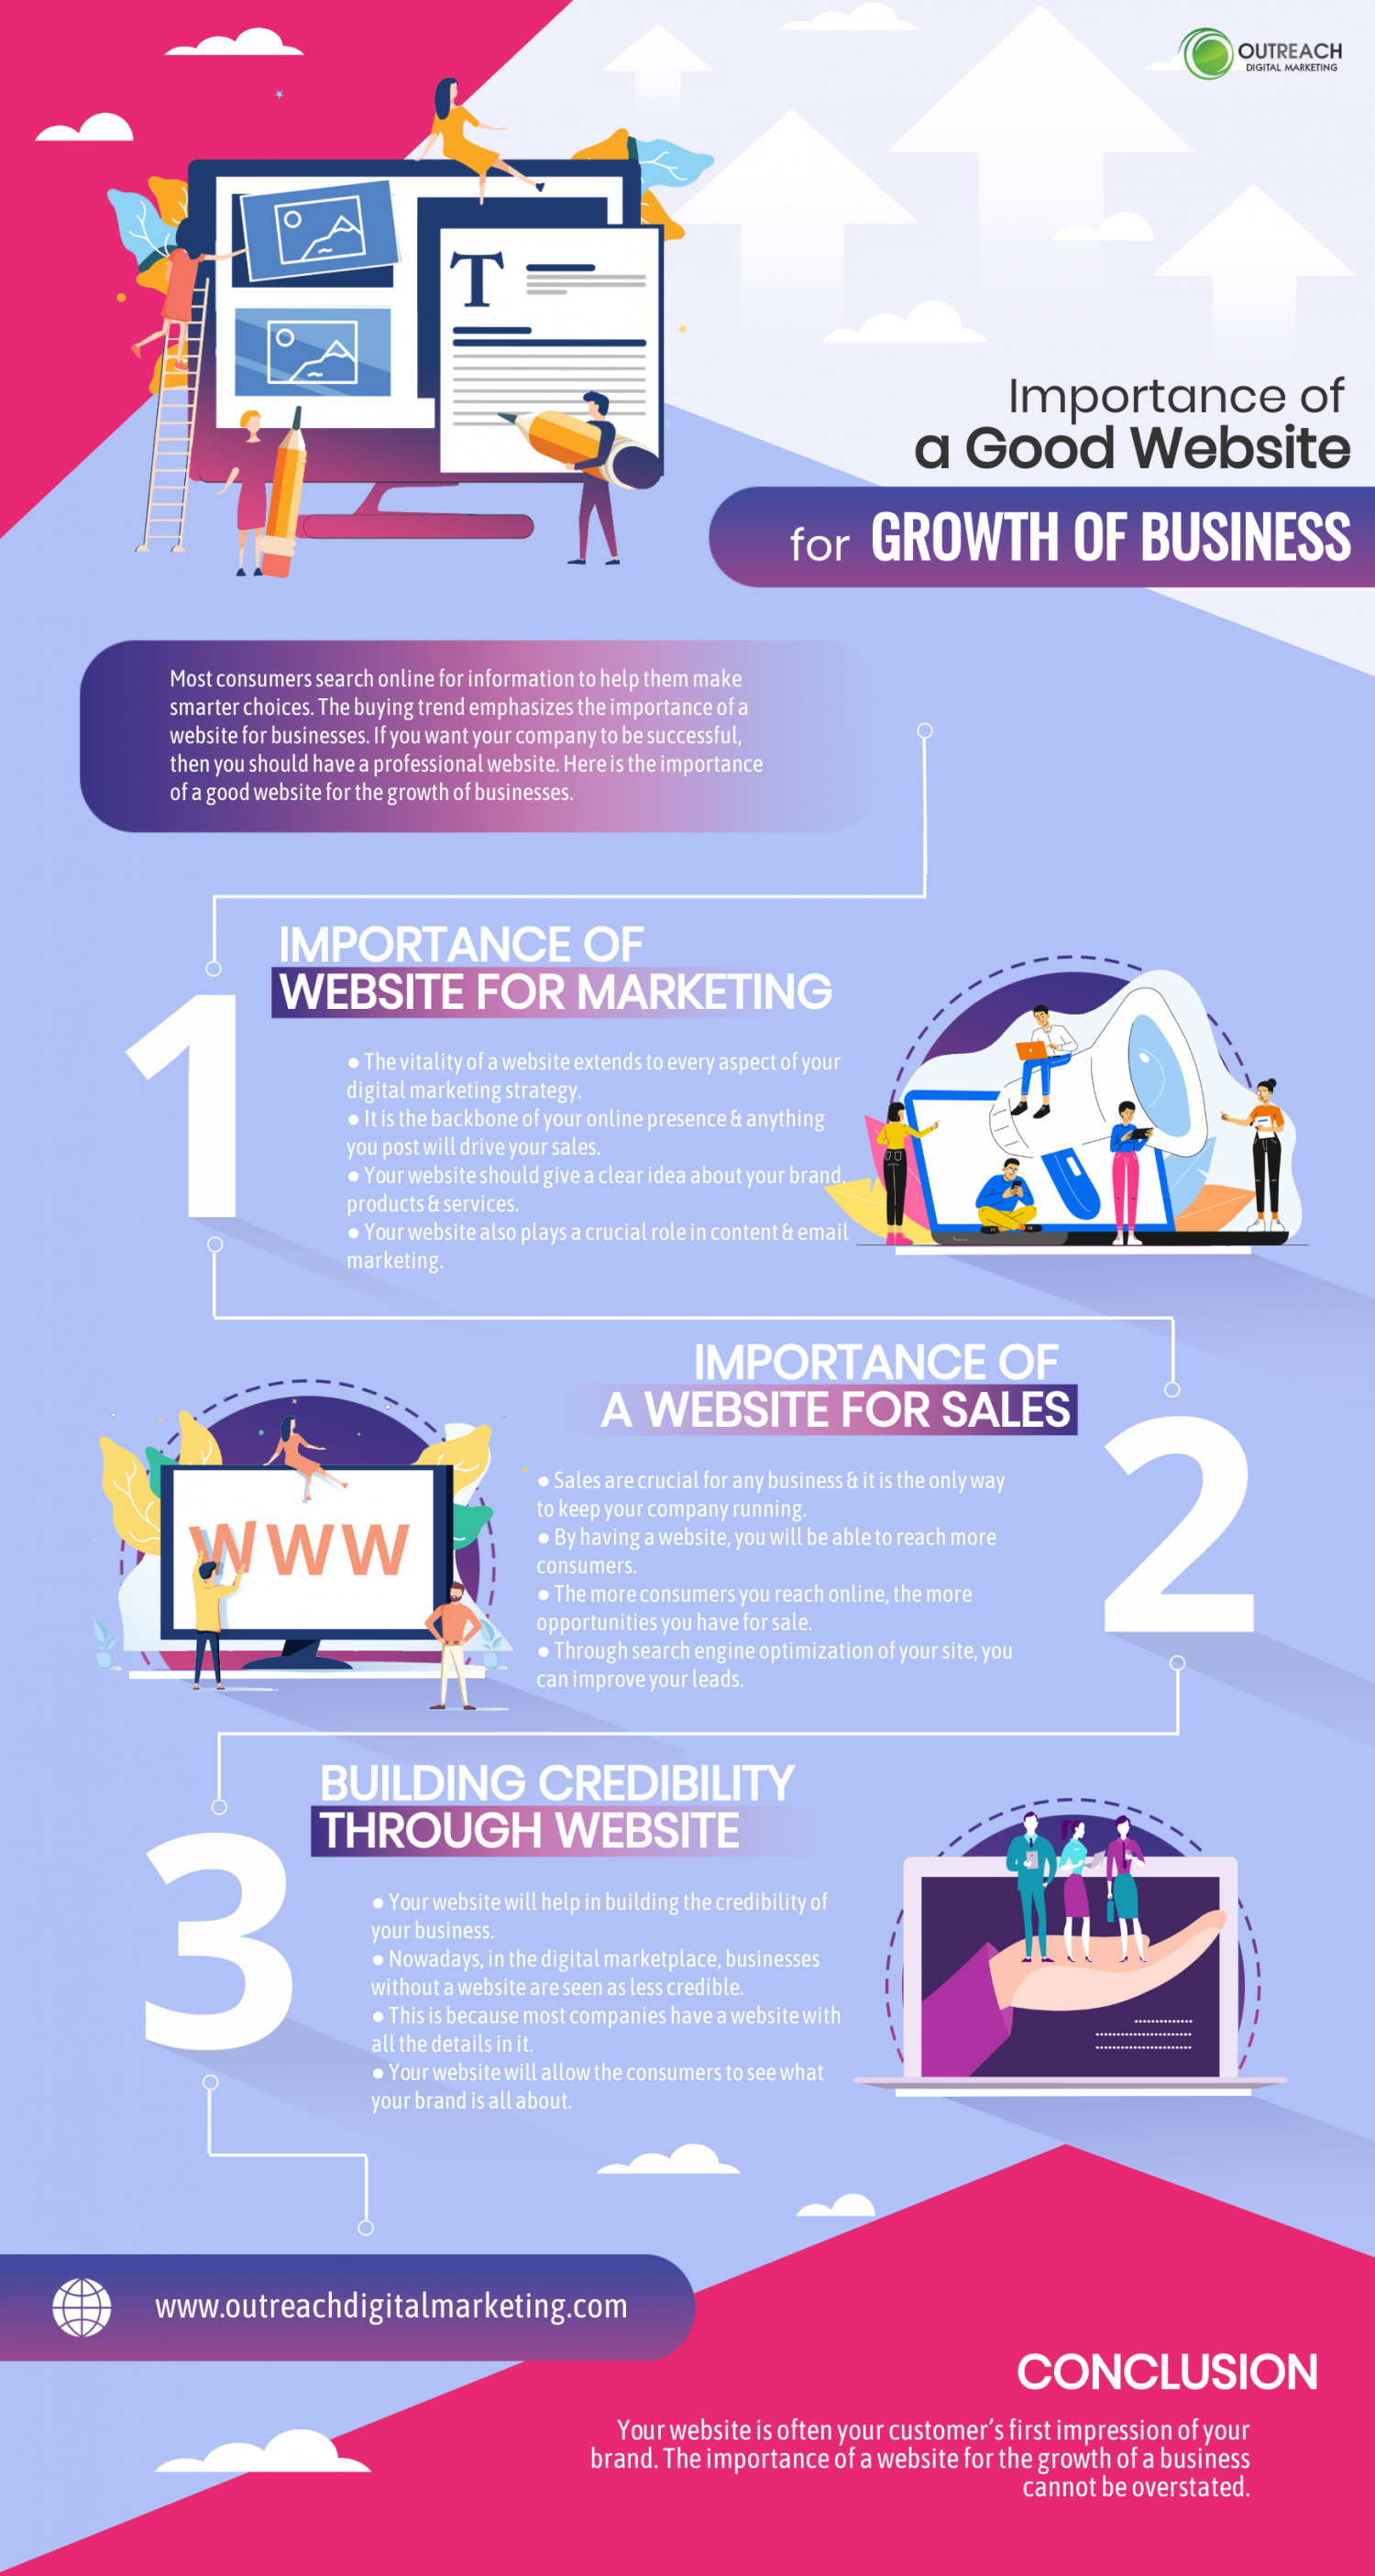 Importance of a good website for growth of business Infographic